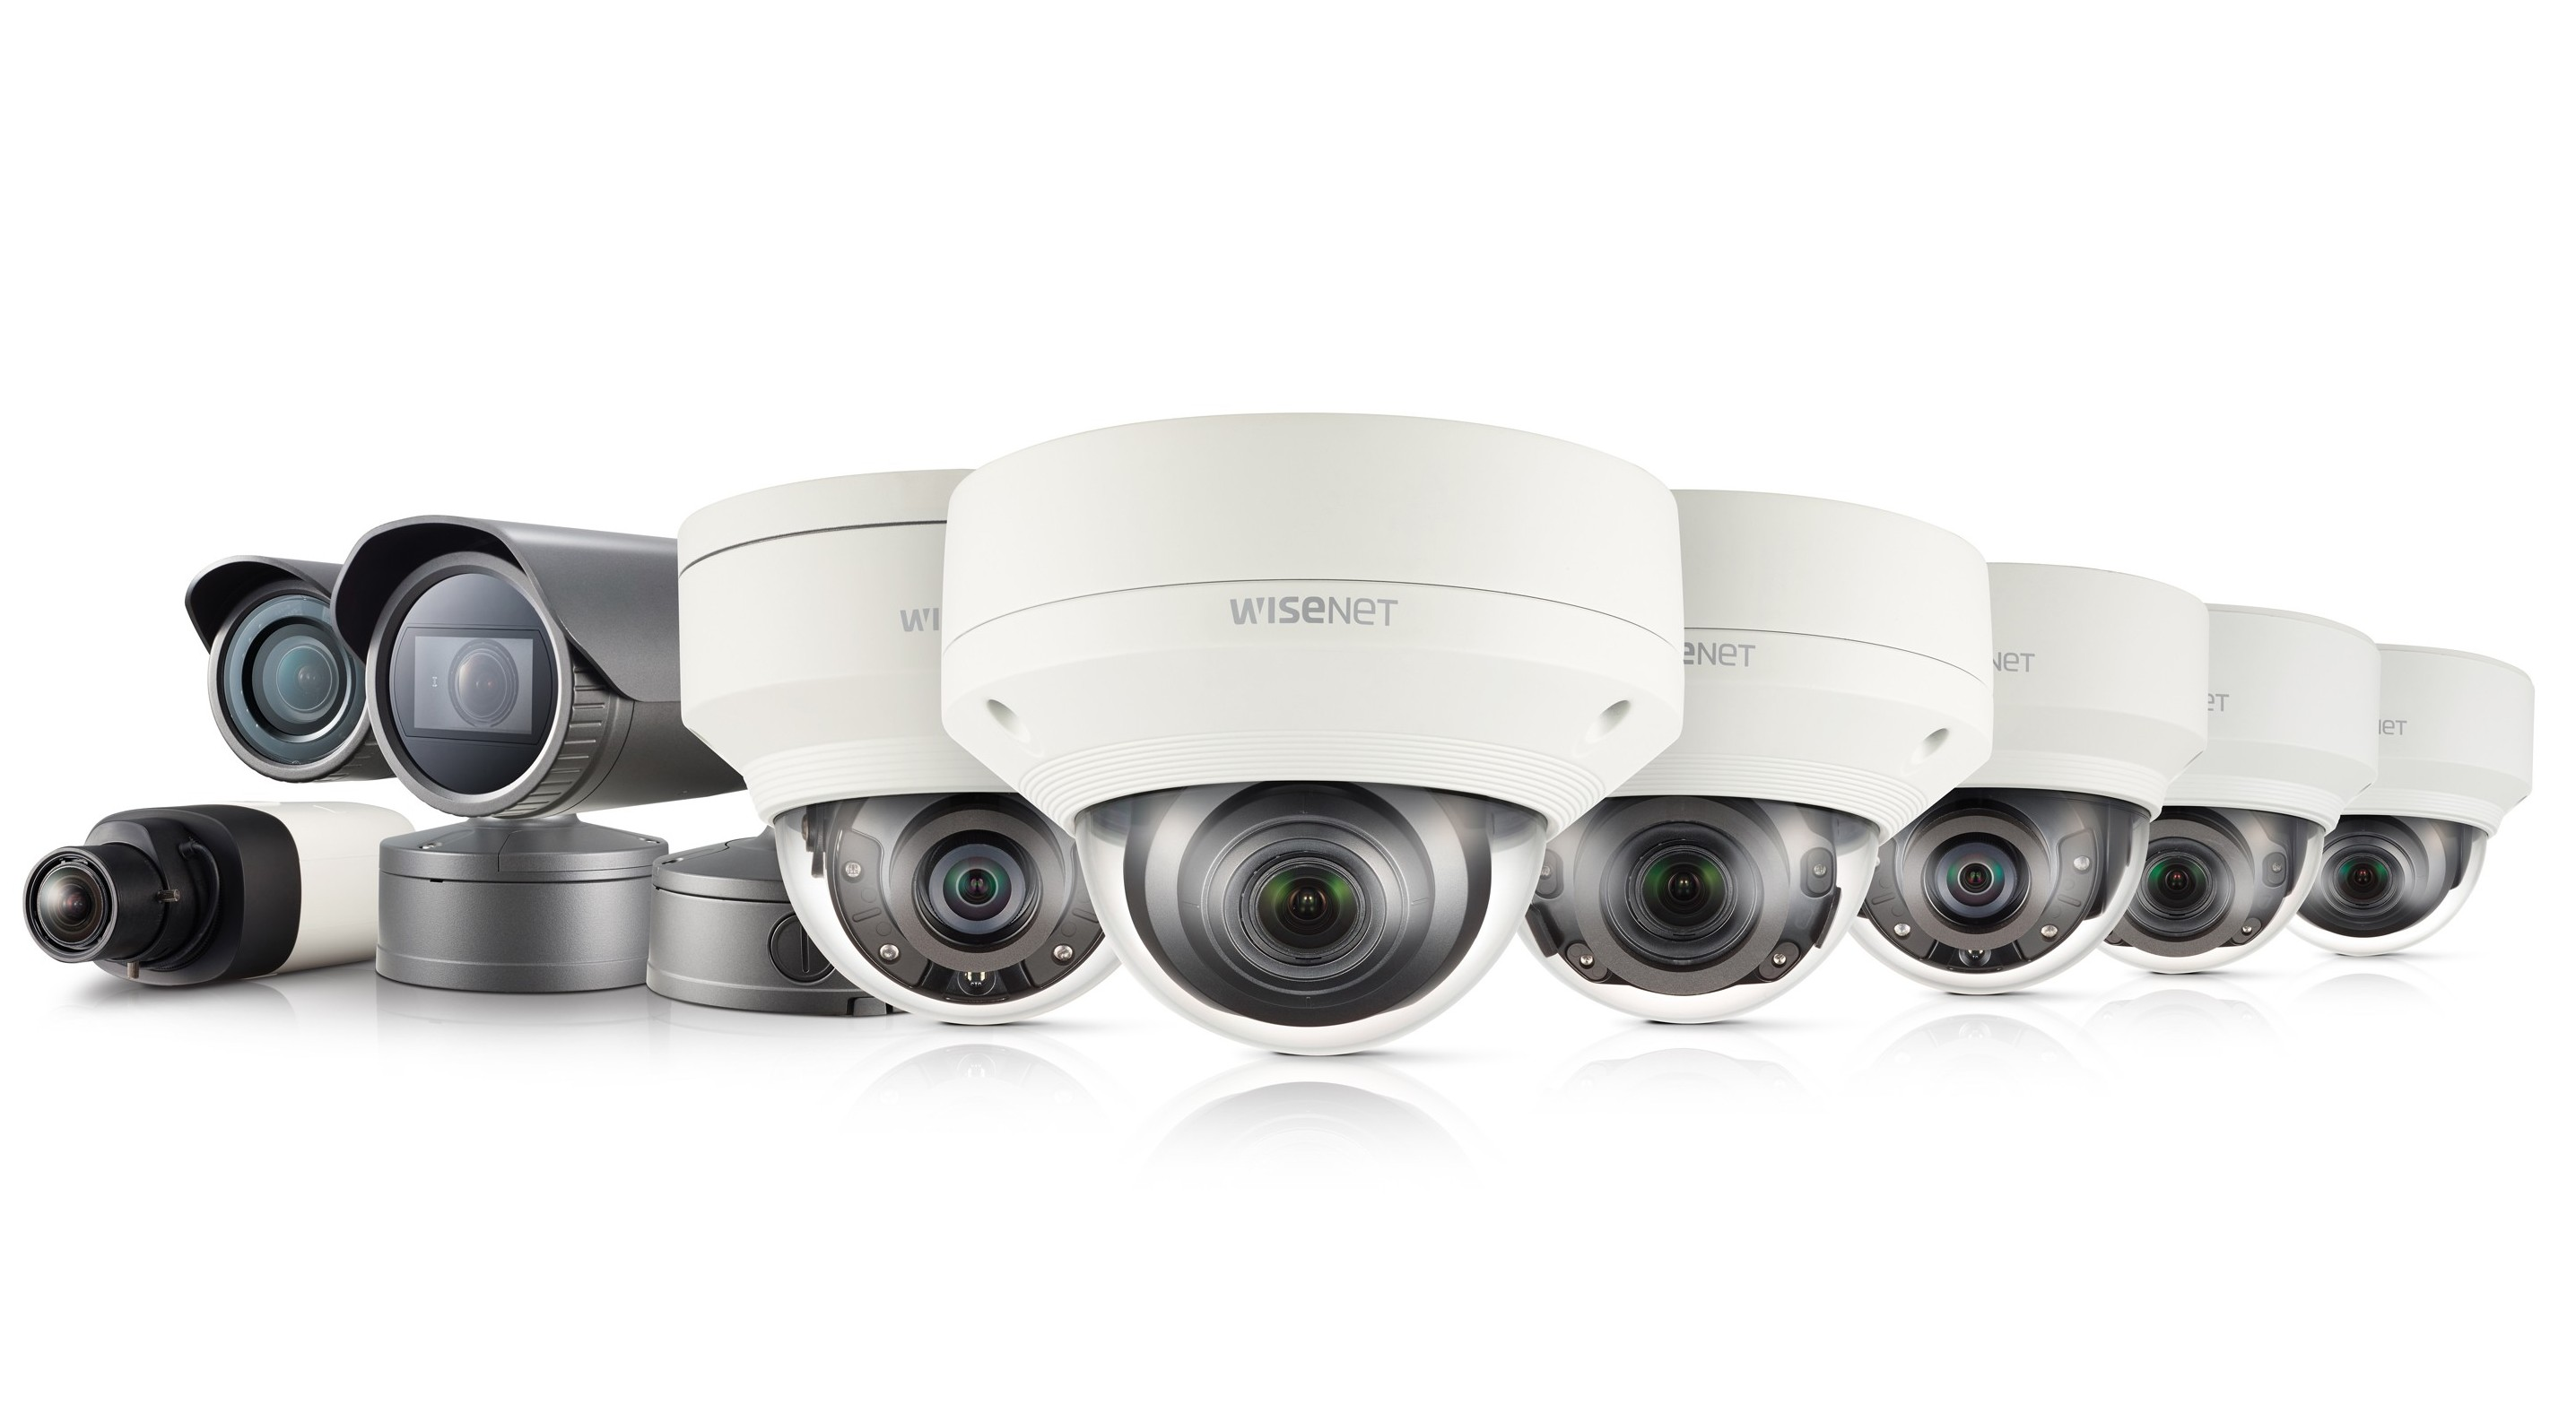 Wisenet X security cameras